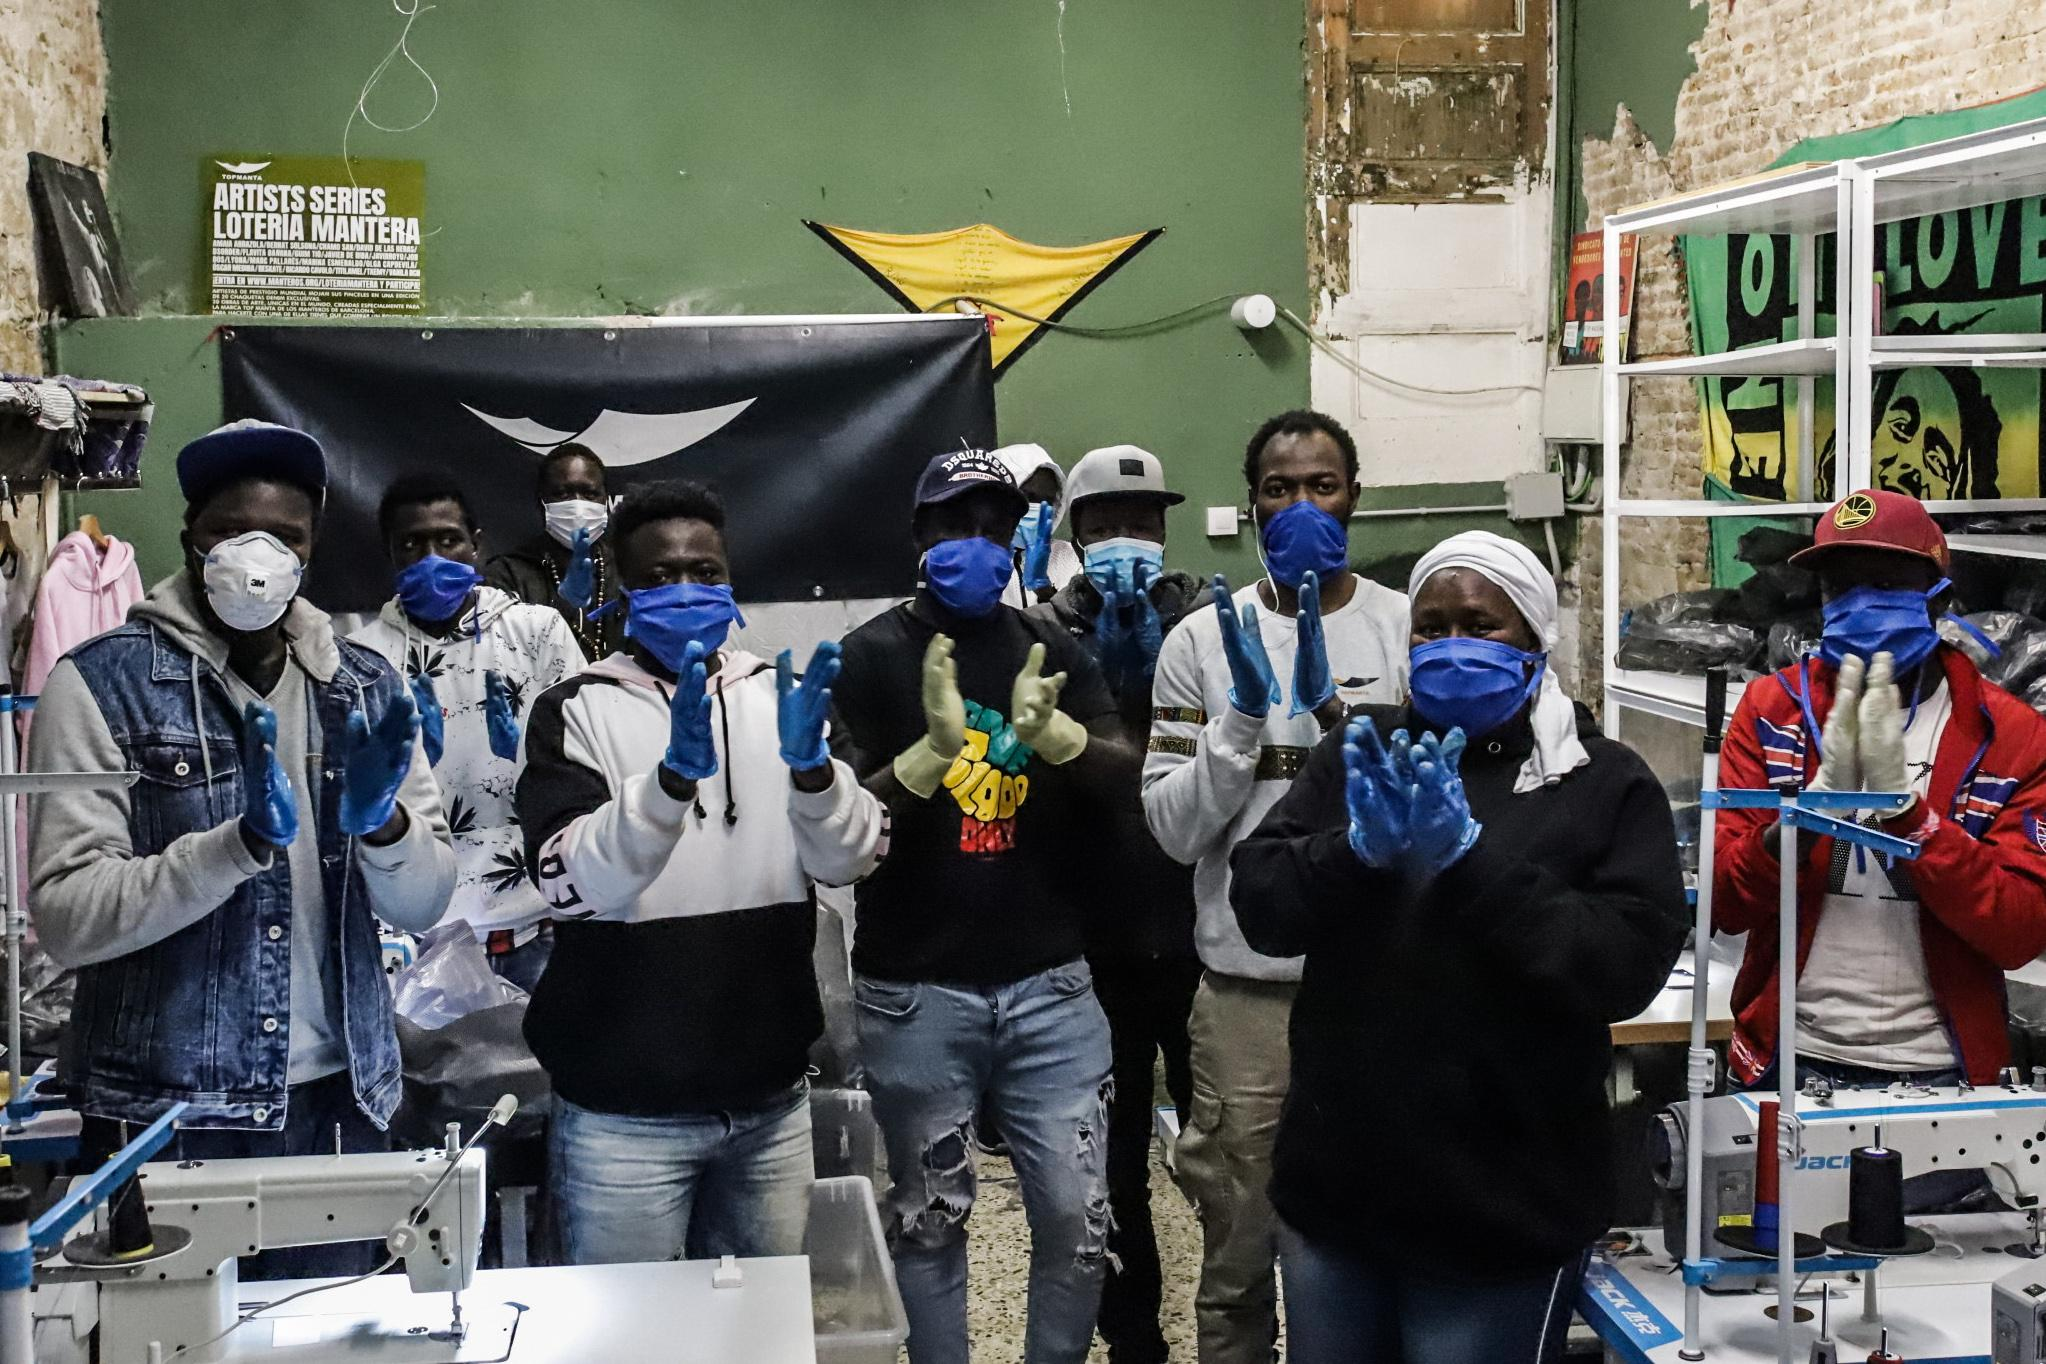 Top manta honor medical Spanish health professionals fighting in the front line against Coronavirus